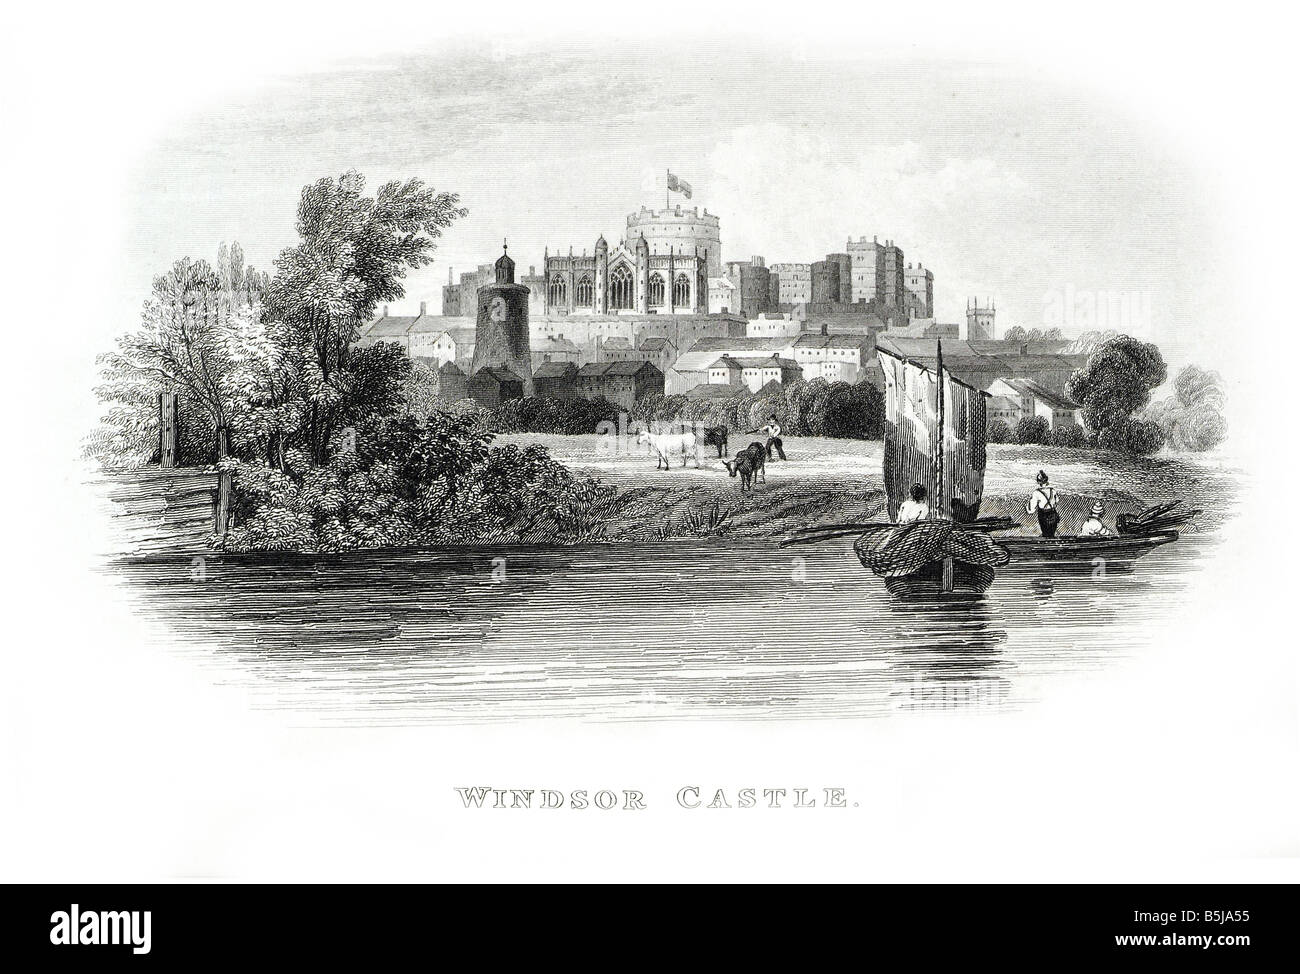 Windsor Castle Berkshire UK from river thames sailing boat bank distant view - Stock Image